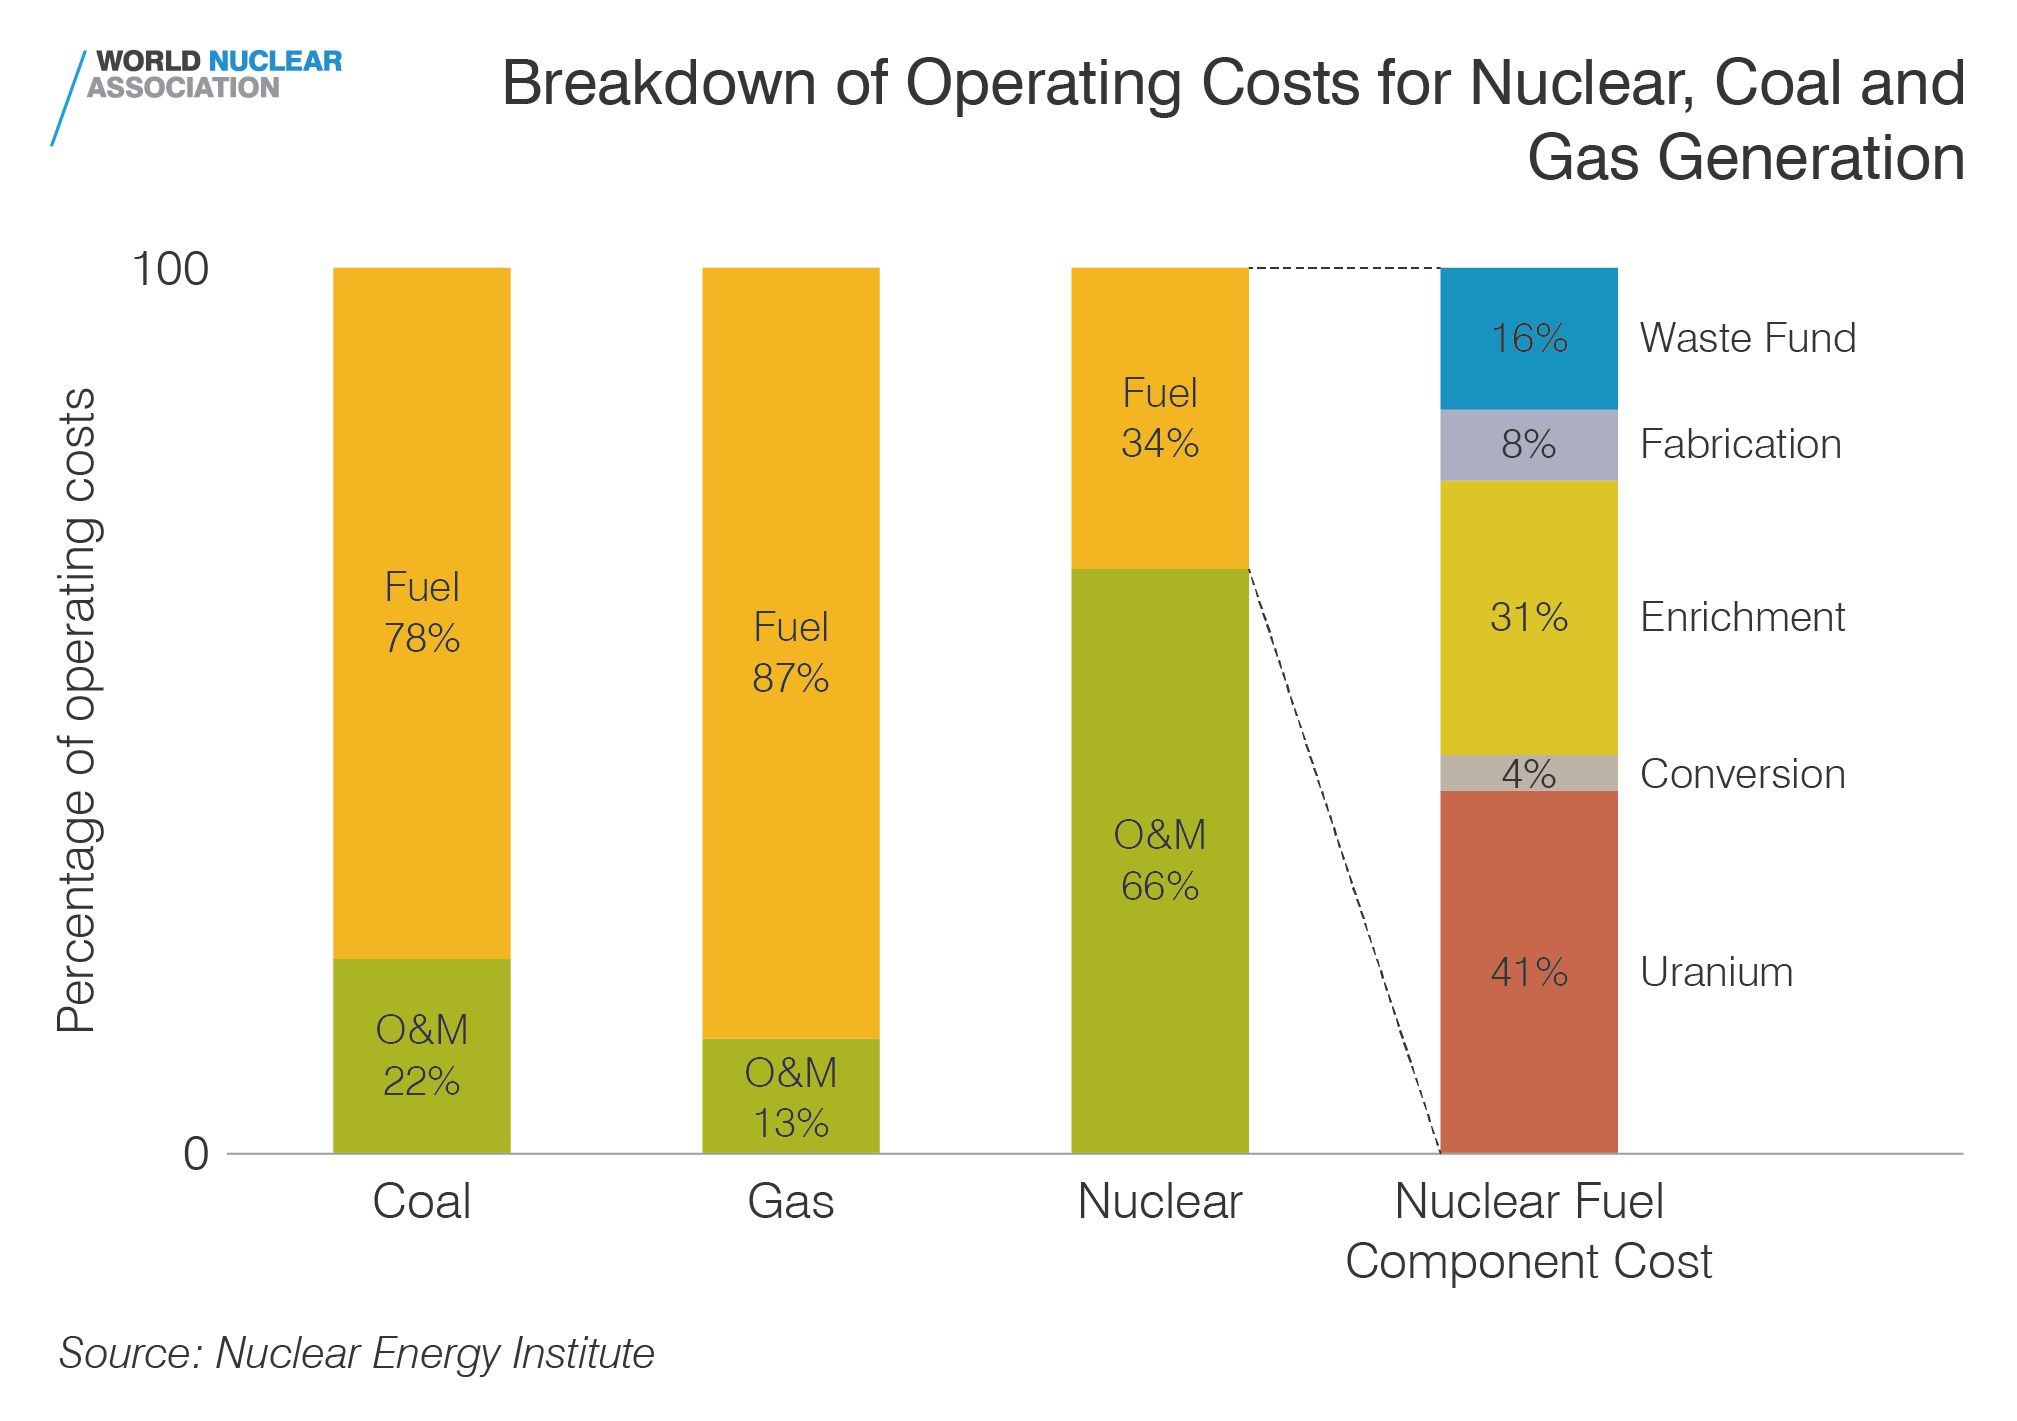 Breakdown Of Operating Costs For Nuclear Coal And Gas Generation